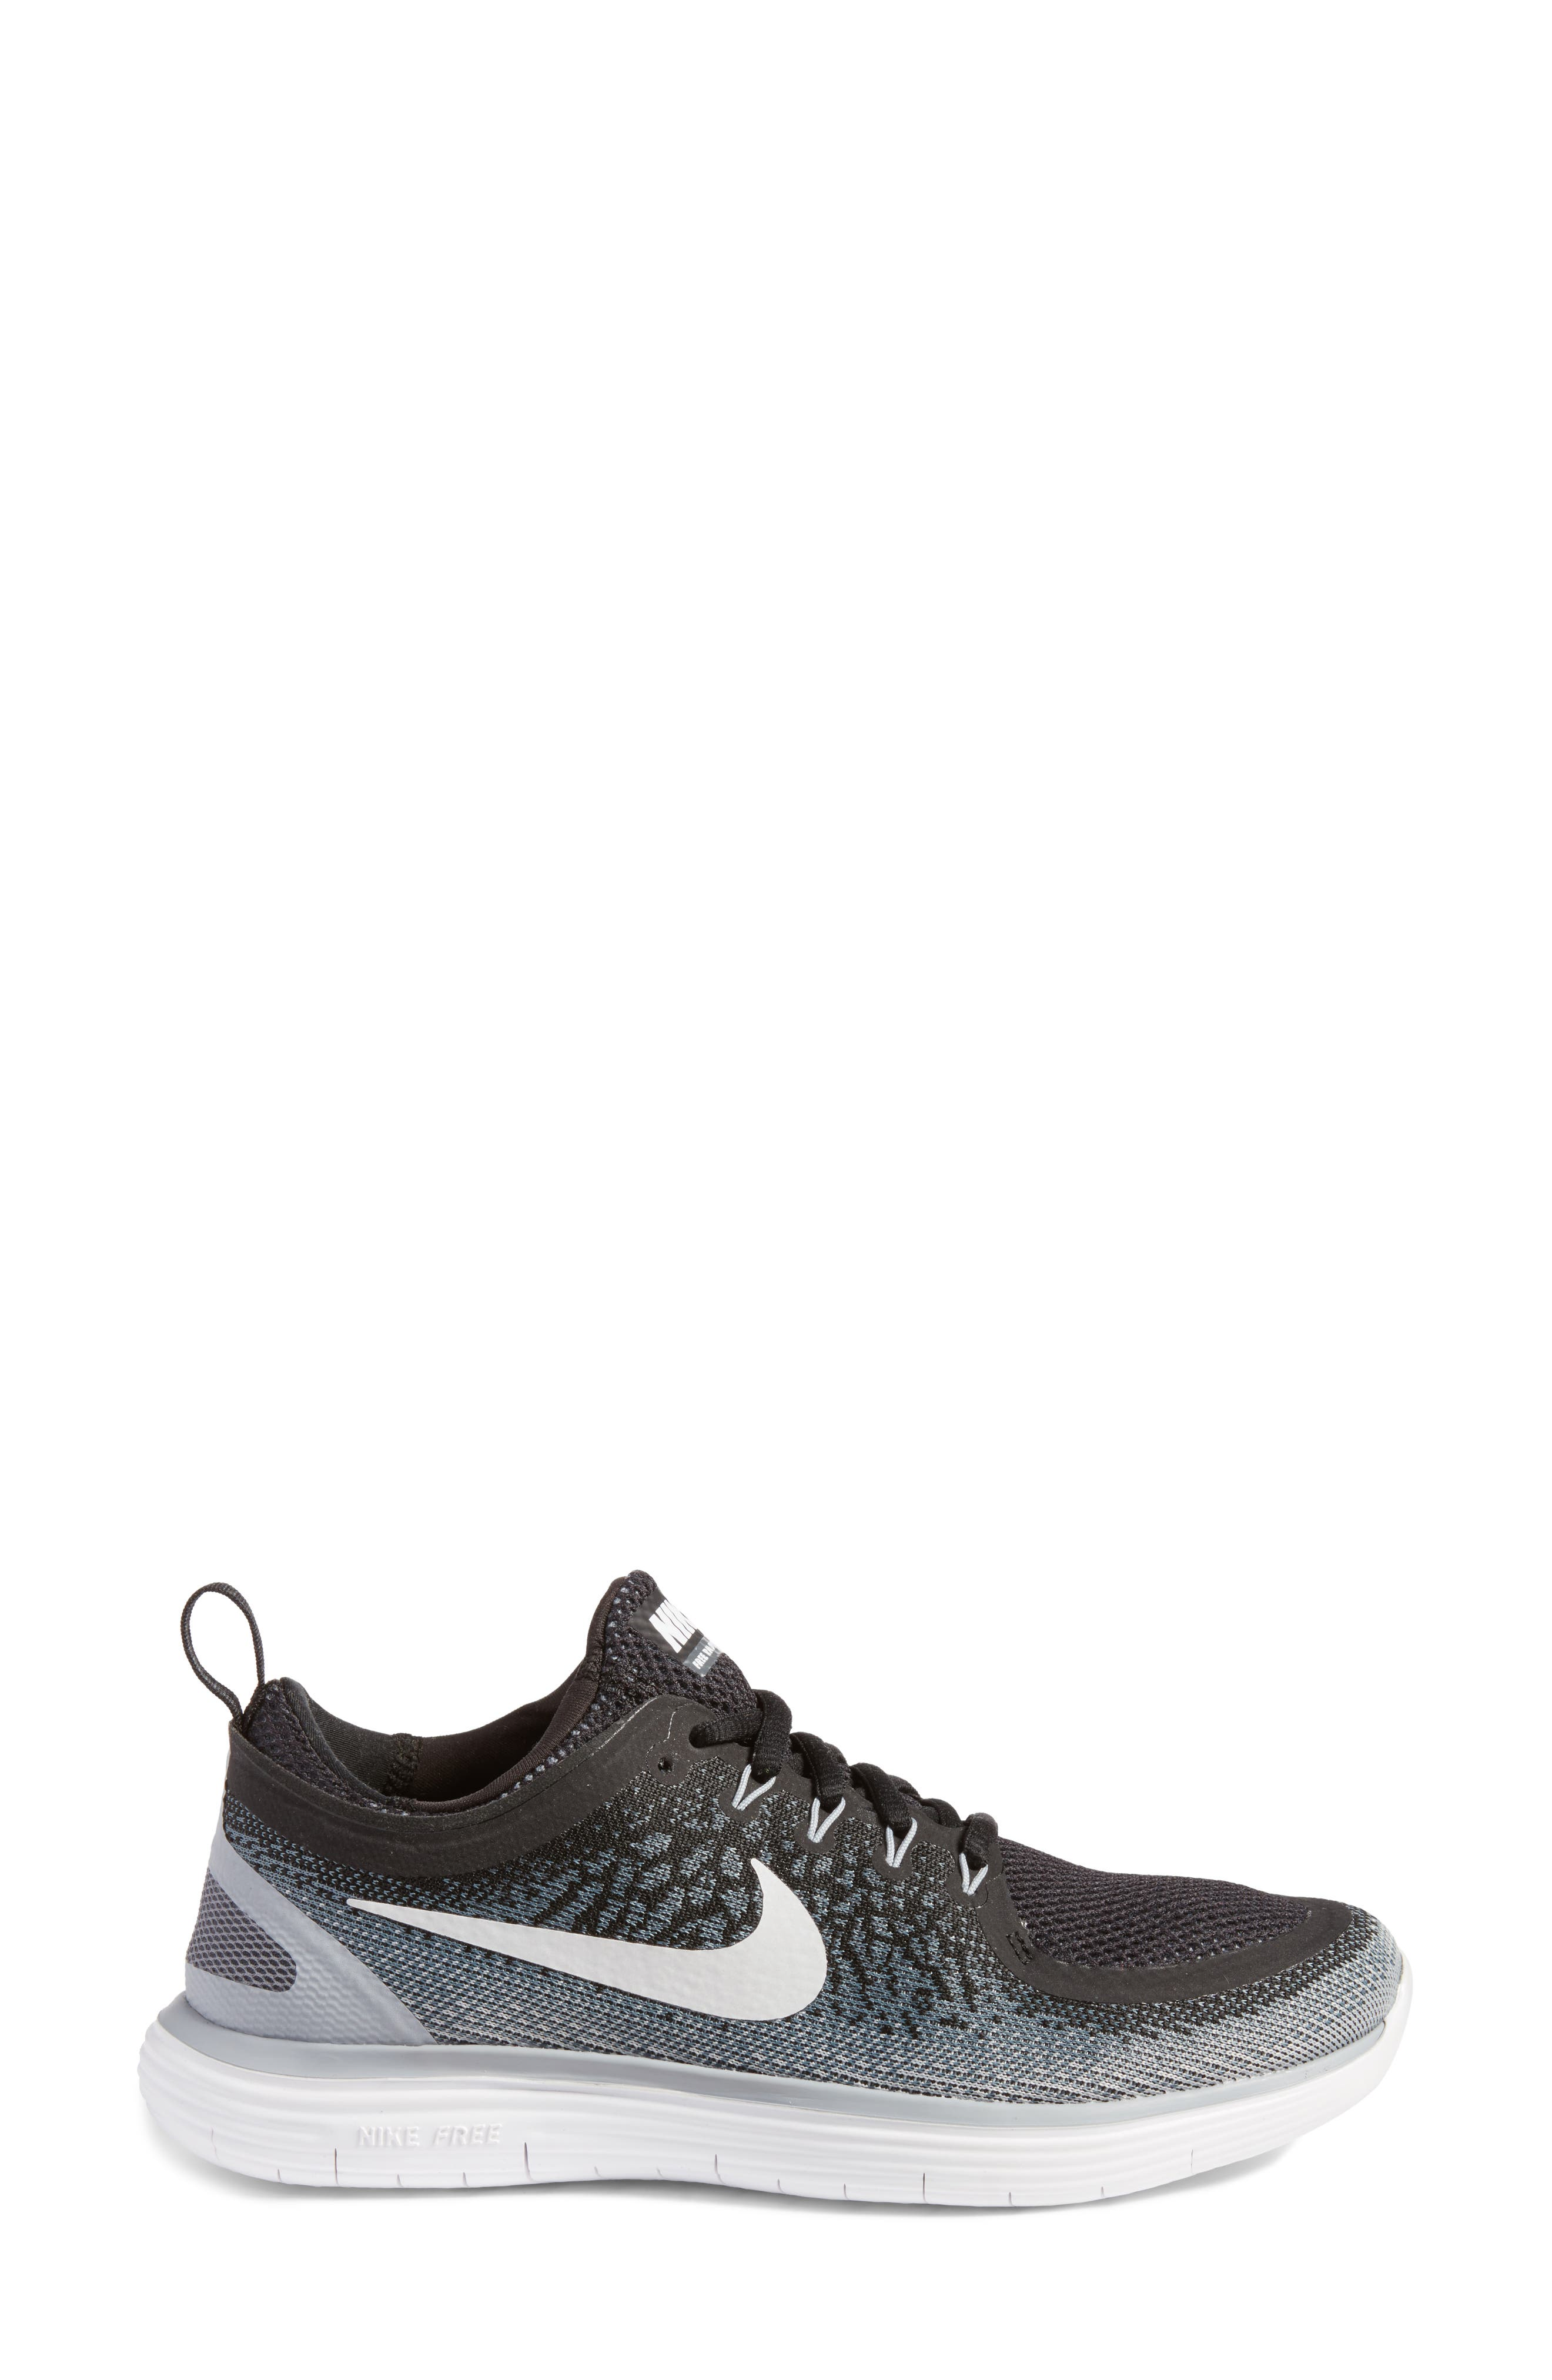 Free Run Distance 2 Running Shoe,                             Alternate thumbnail 3, color,                             001